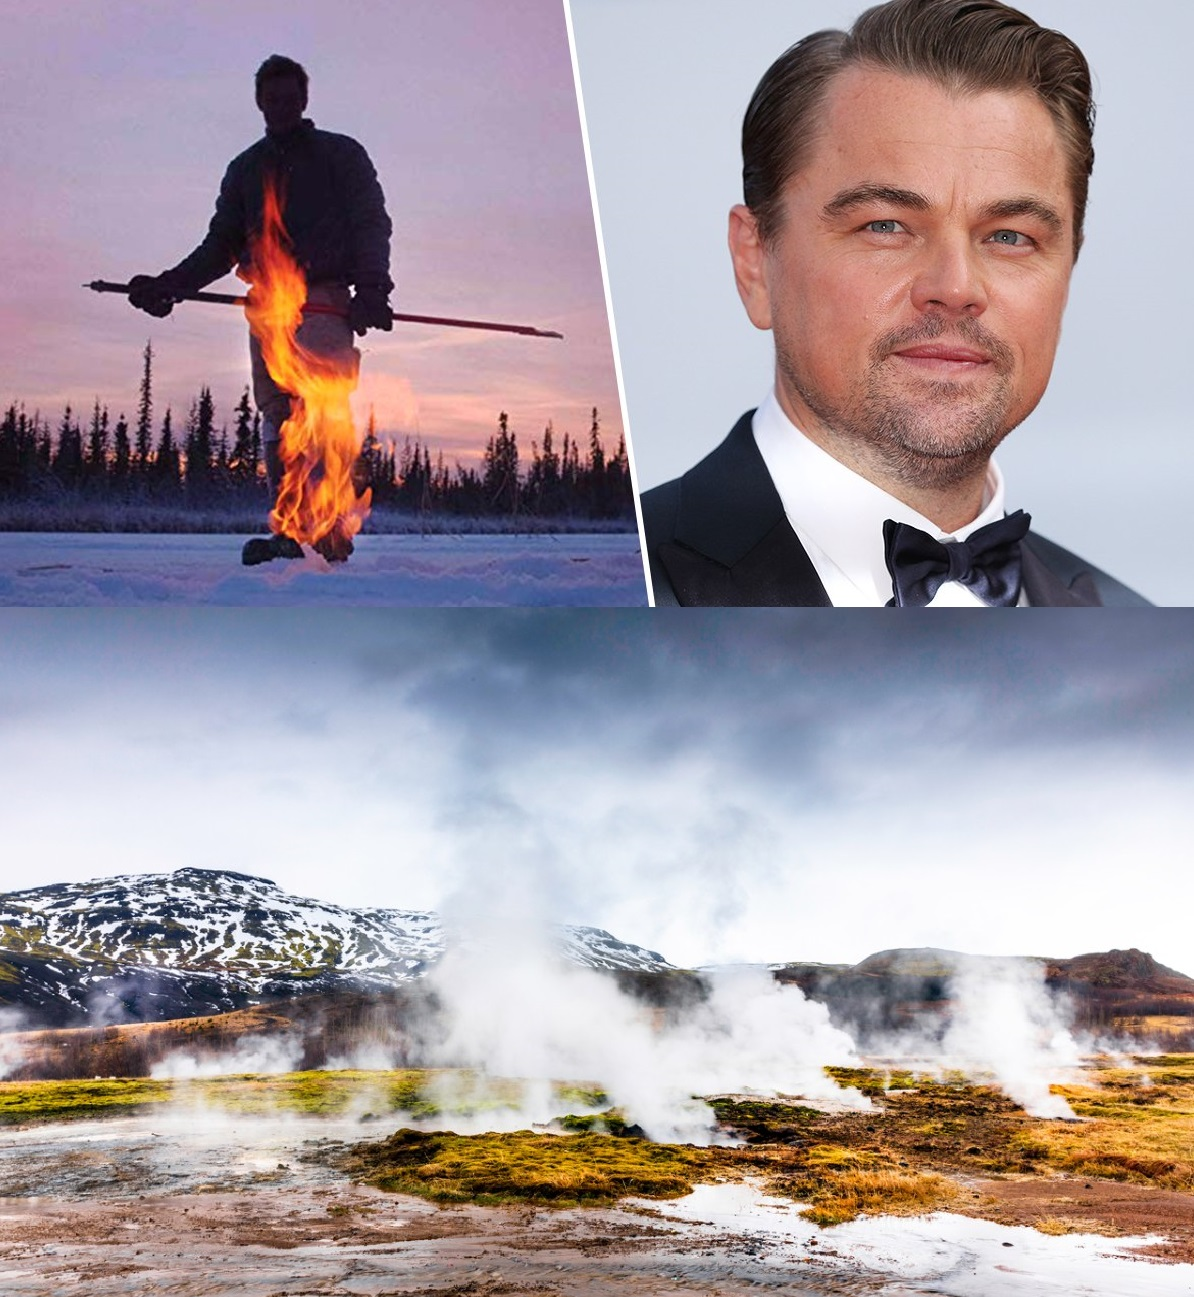 leonardo dicaprio-ice-on-fire-fb-duo.jpg